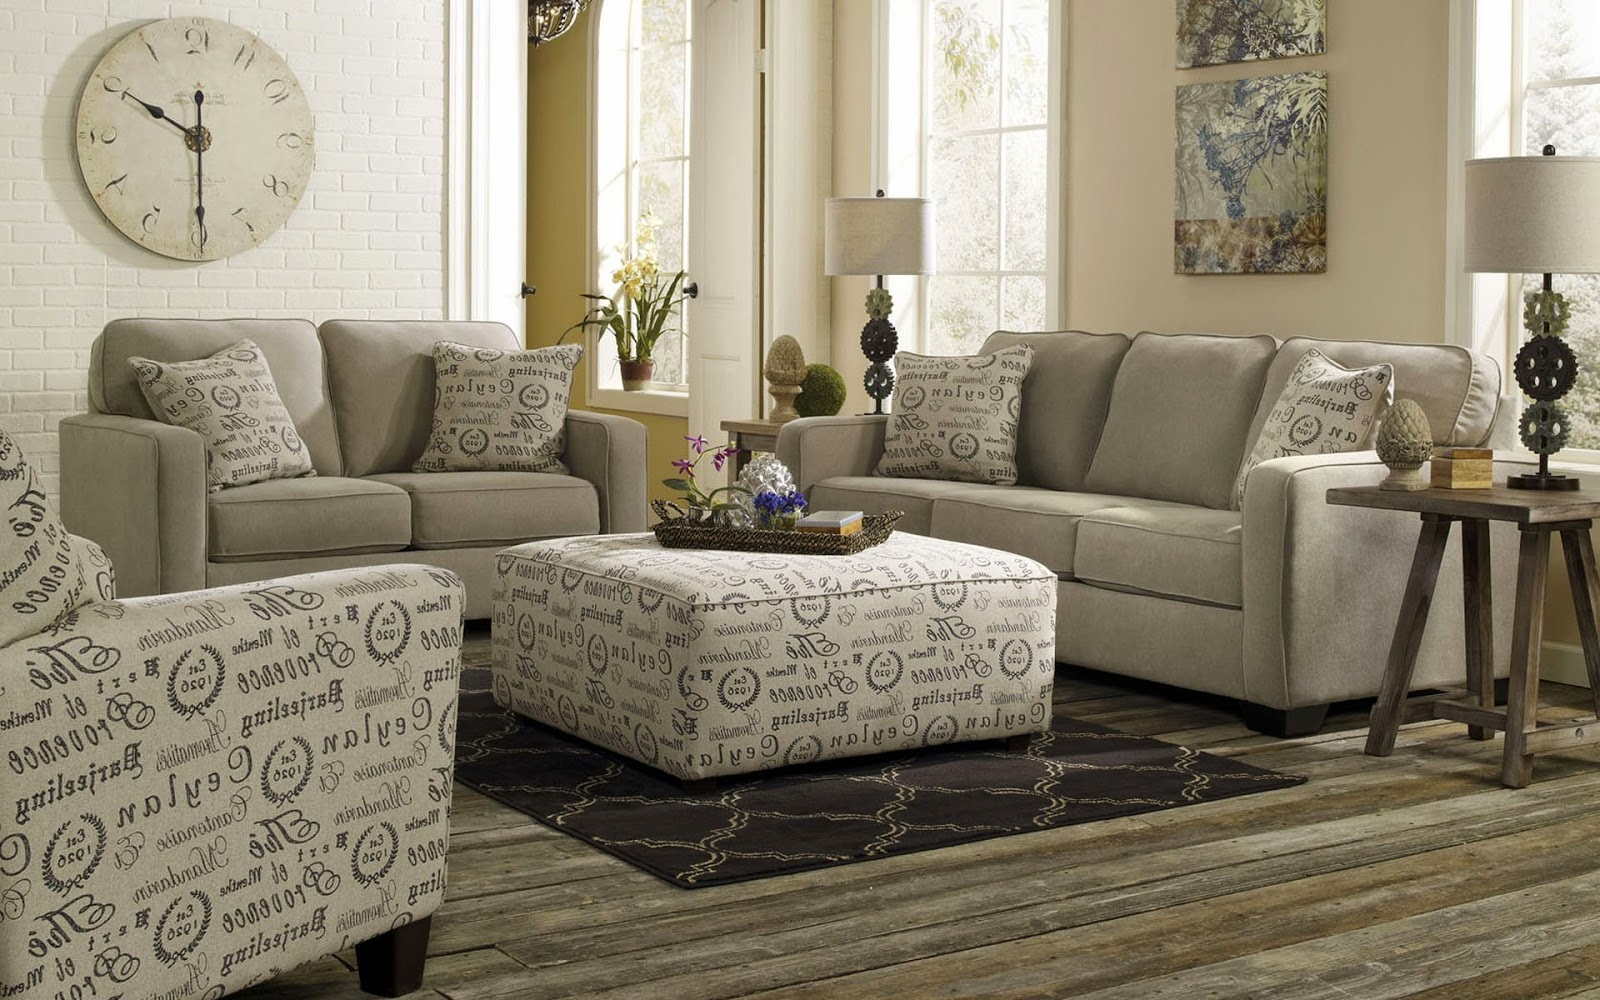 Best 5 Sofas by Ashley Furniture   Tips Decoration Home ...